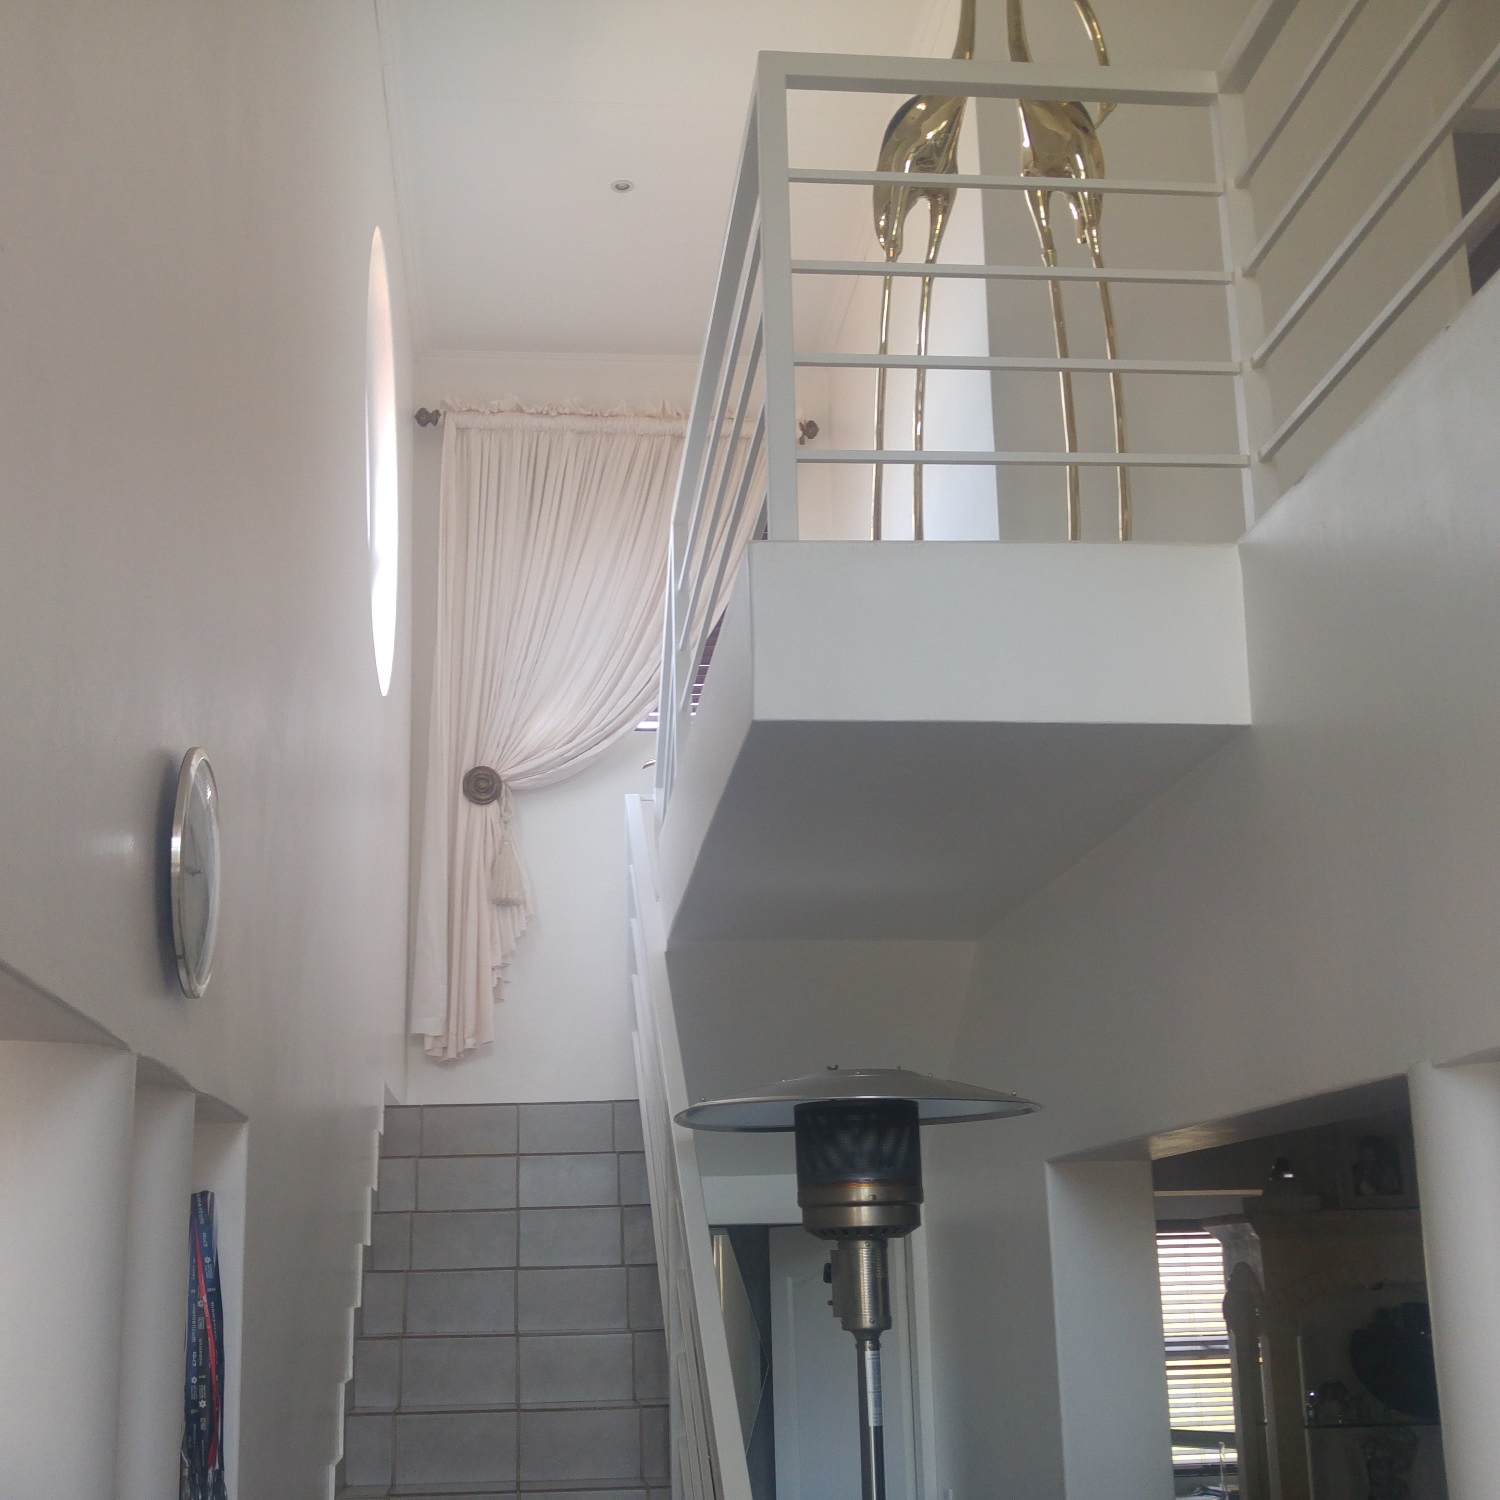 4 Bedroom Townhouse for sale in Glenvista Ext 6 ENT0001967 : photo#11